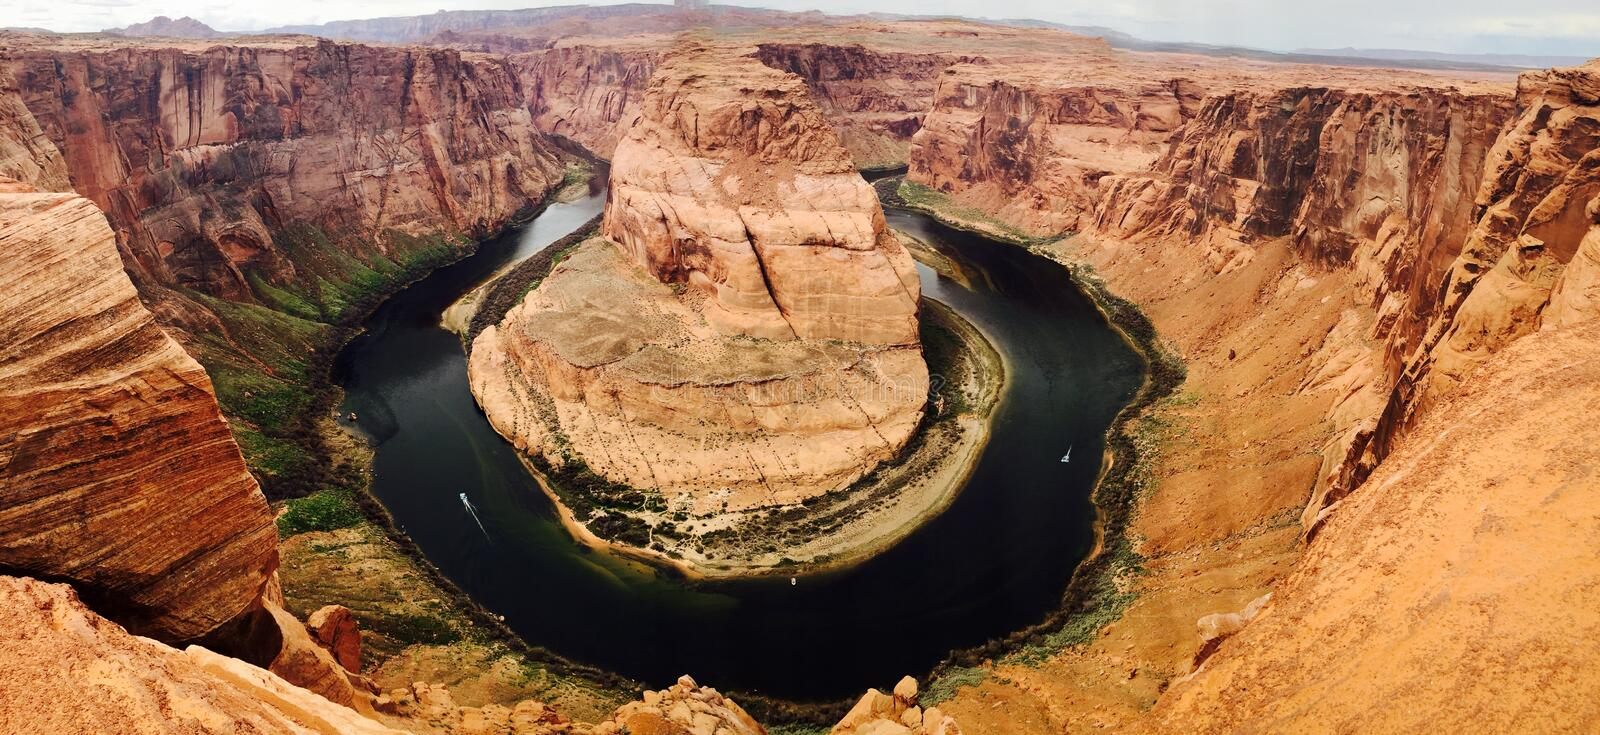 Horseshoe Bend, Arizona Free Public Domain Cc0 Image